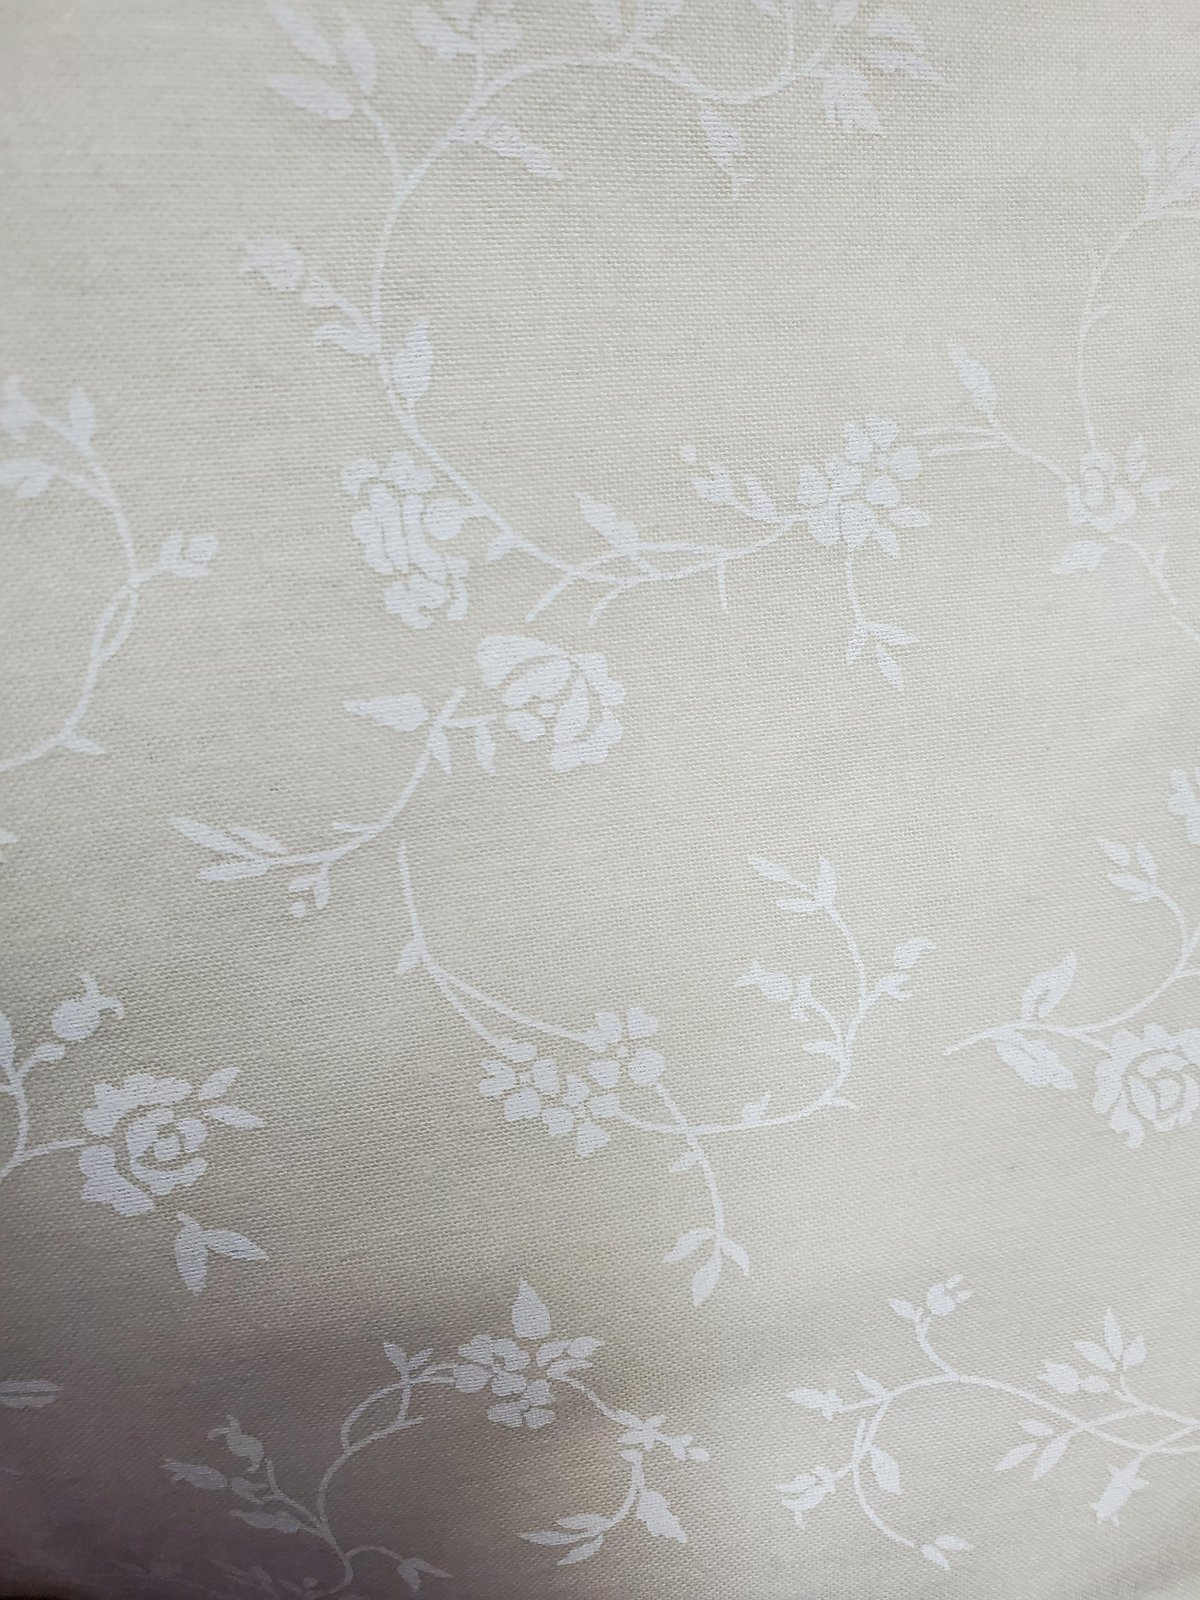 3 Yard Backing Piece: 108 Wide White Flowing Vines on Off-white in a single 3 yard piece